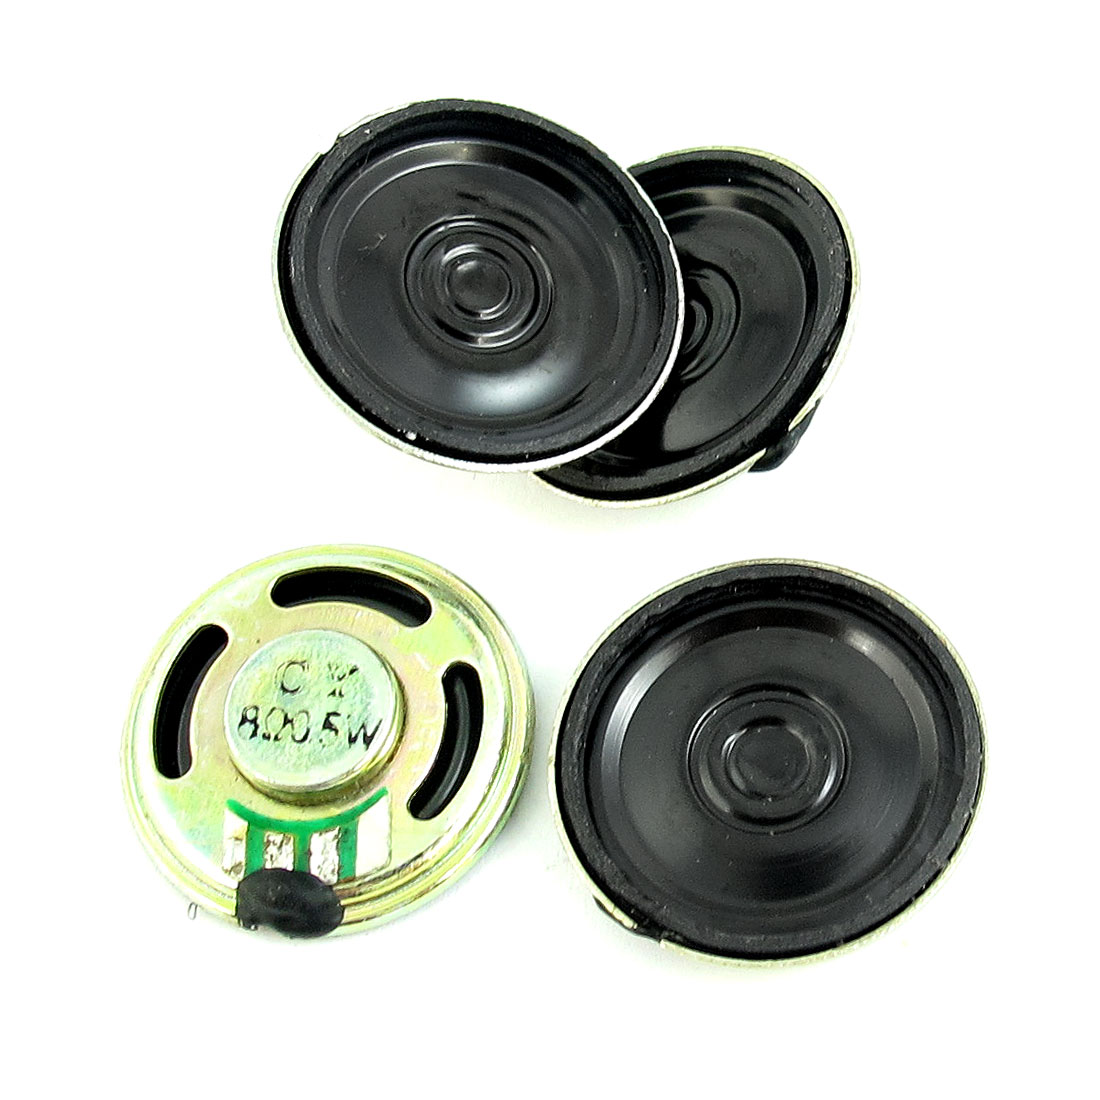 4Pcs 0.5W 8 Ohm 23mm Diameter Metal Shell Round Magnet Speaker Loudspeaker Horn for Electric Toys